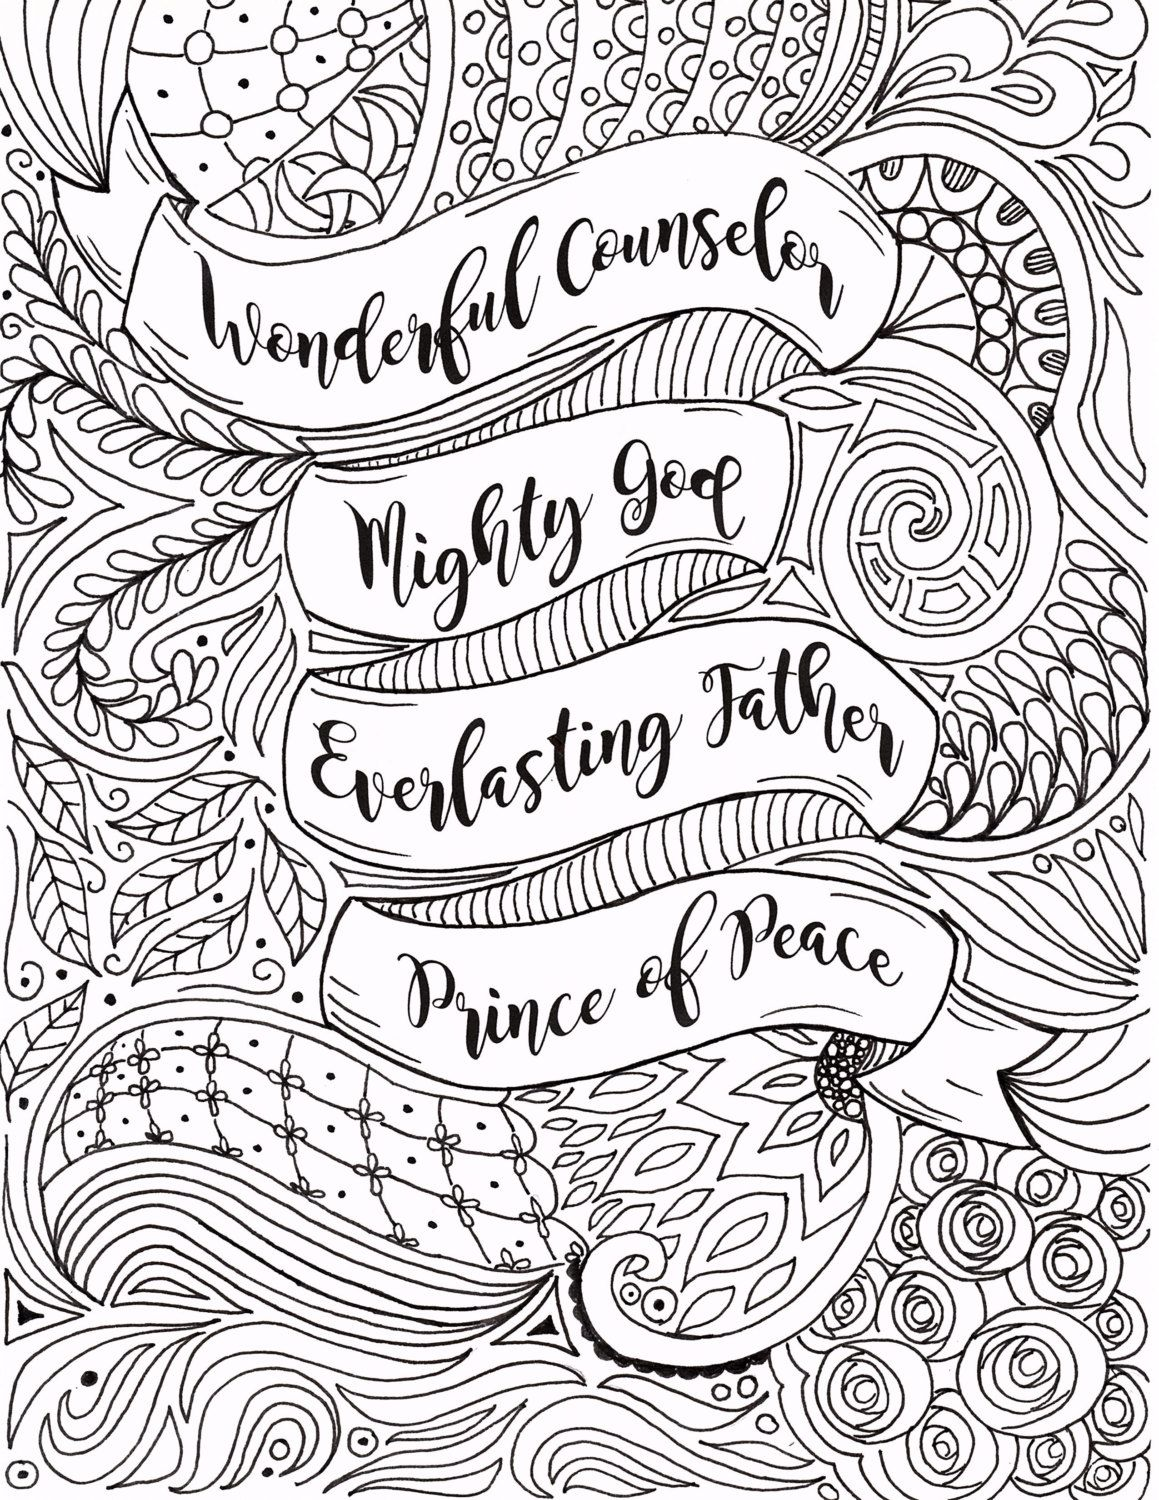 adult christmas coloring page christian by fourthavepenandink